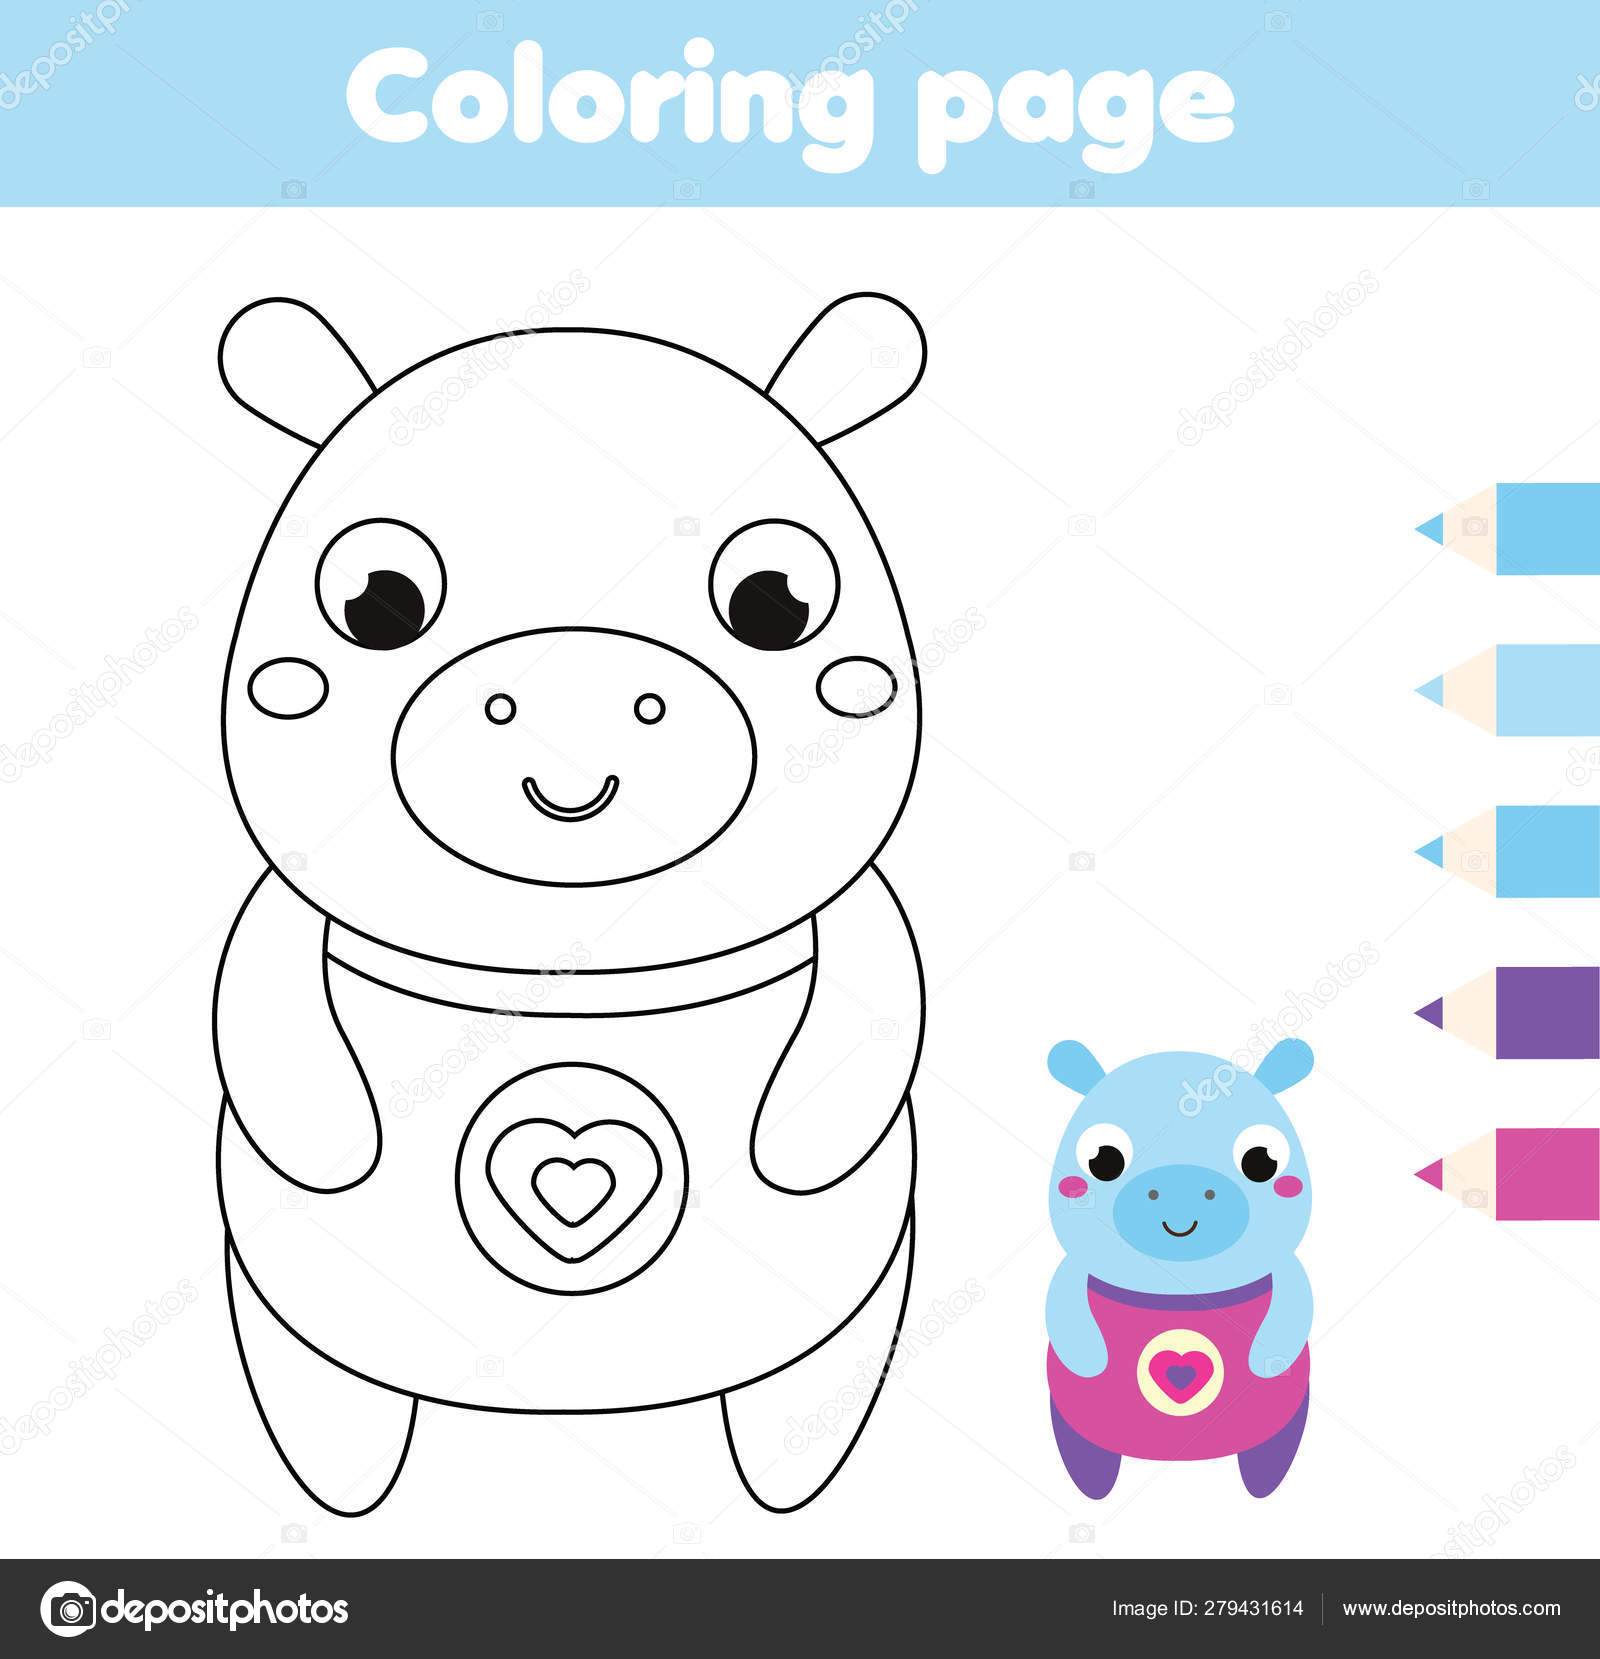 Coloring Page With Hippo Drawing Kids Activity Printable Fun For Toddlers And Children Vector Image By C Ksuklein Vector Stock 279431614